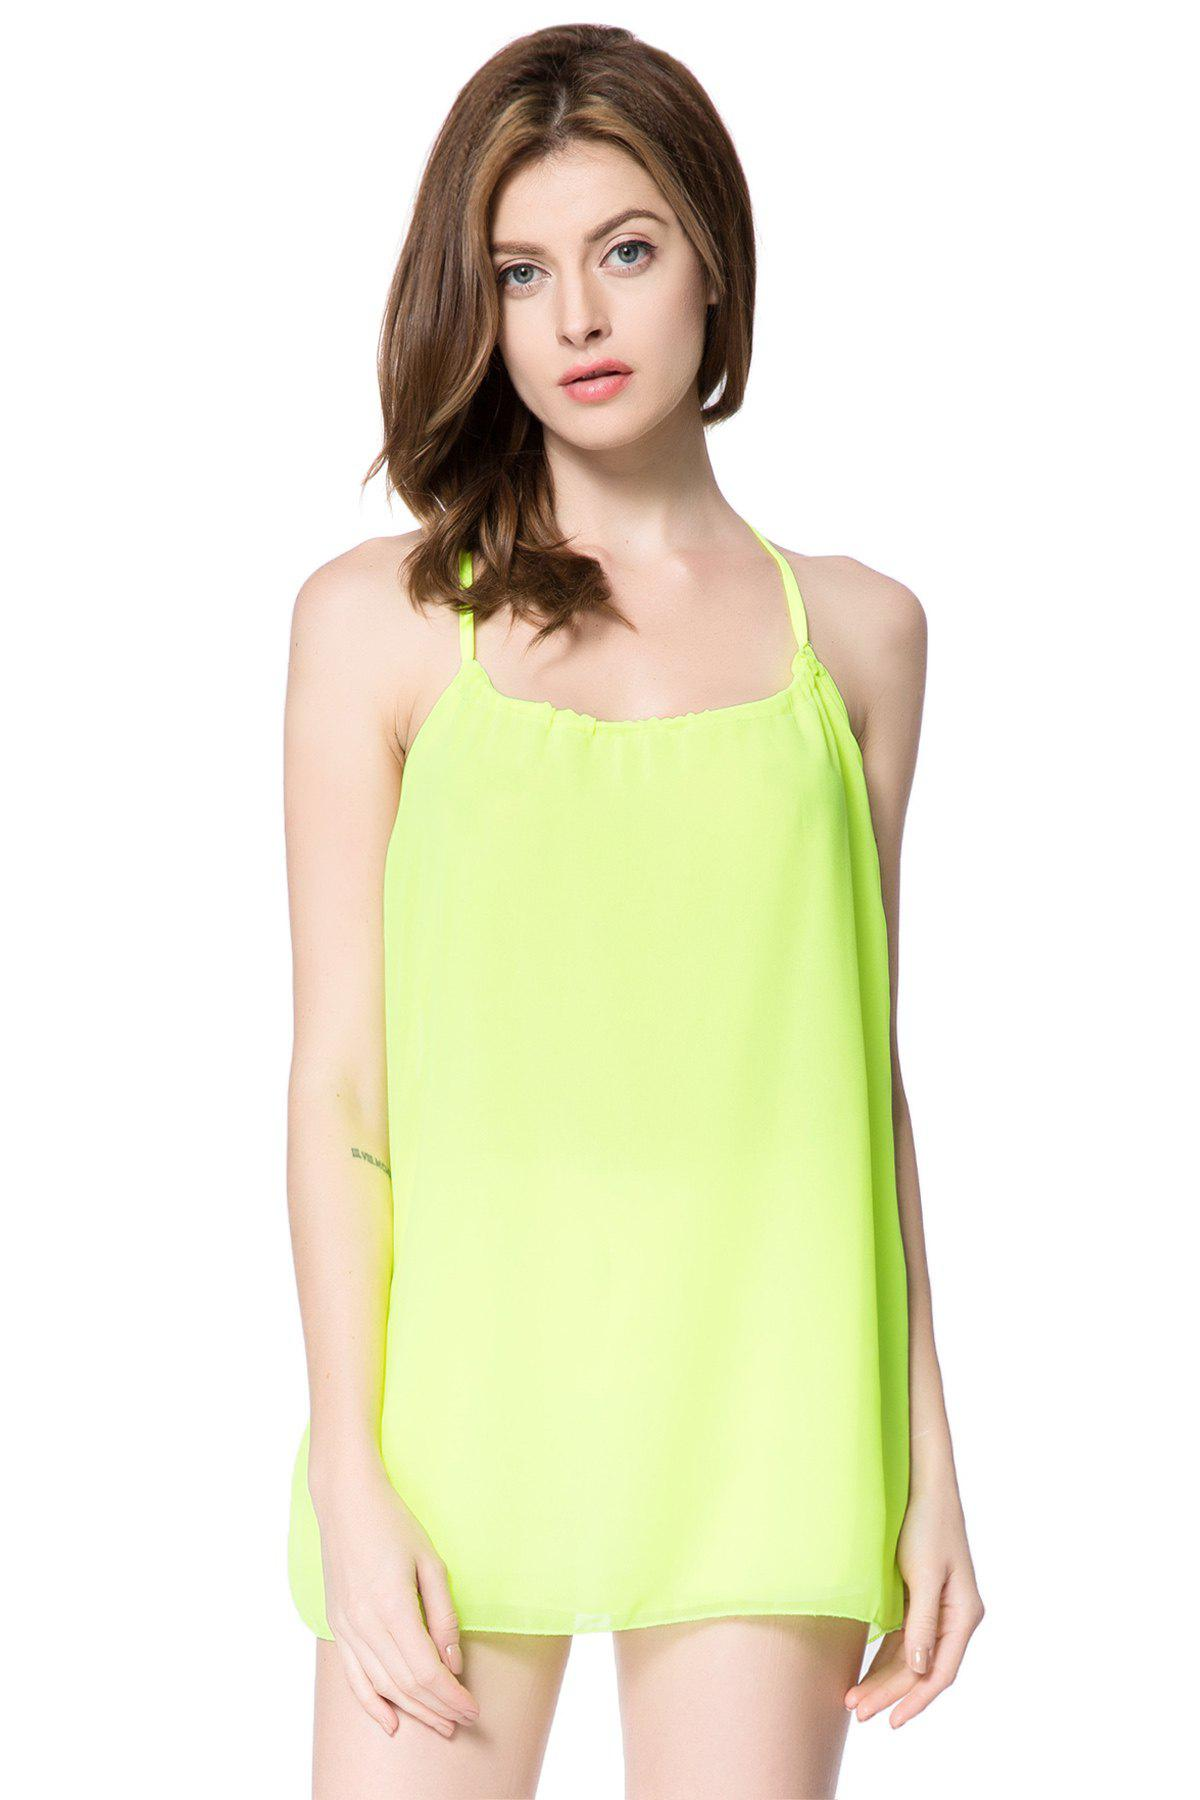 Blouse Sexy Scoop Neck manches en mousseline de soie Backless femmes - Vert L